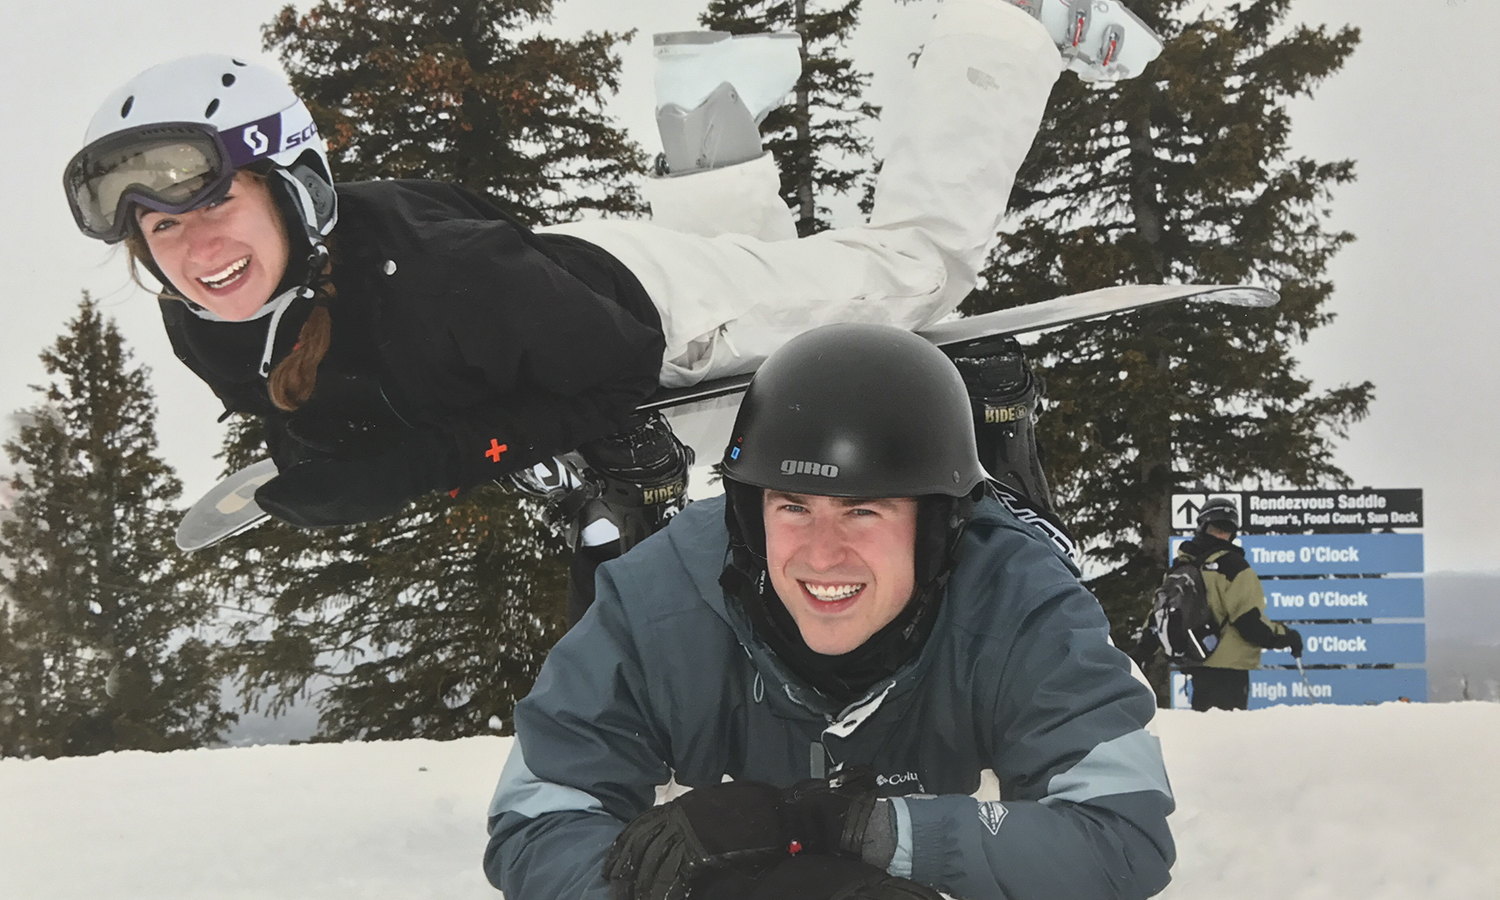 Kelly Mauch '17 and Benjamin Carr '16 hit the slopes at Steamboat Ski Resort in Steamboat Springs, CO.